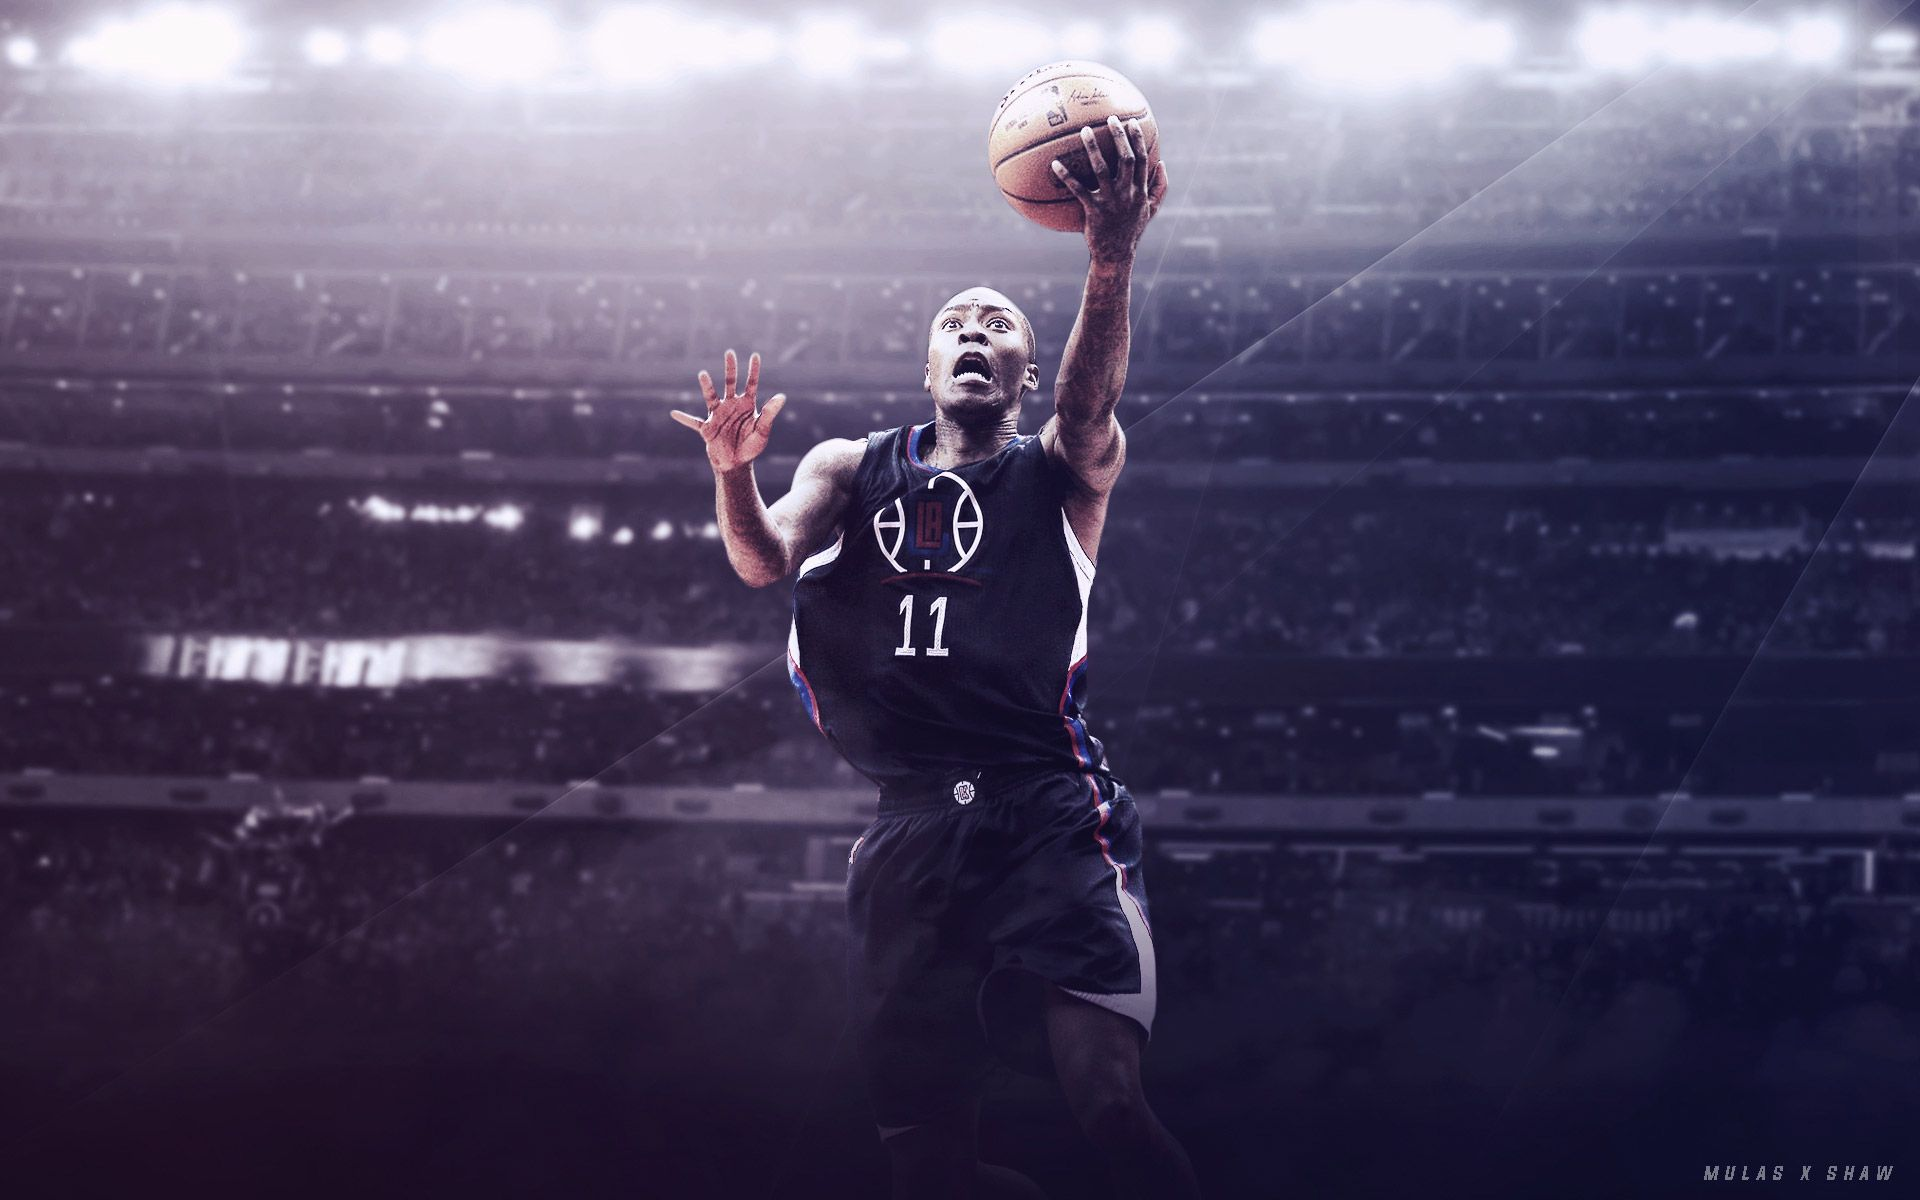 Jamal Crawford Wallpapers Clippers Logo Wallpaper Nba 1673269 Hd Wallpaper Backgrounds Download